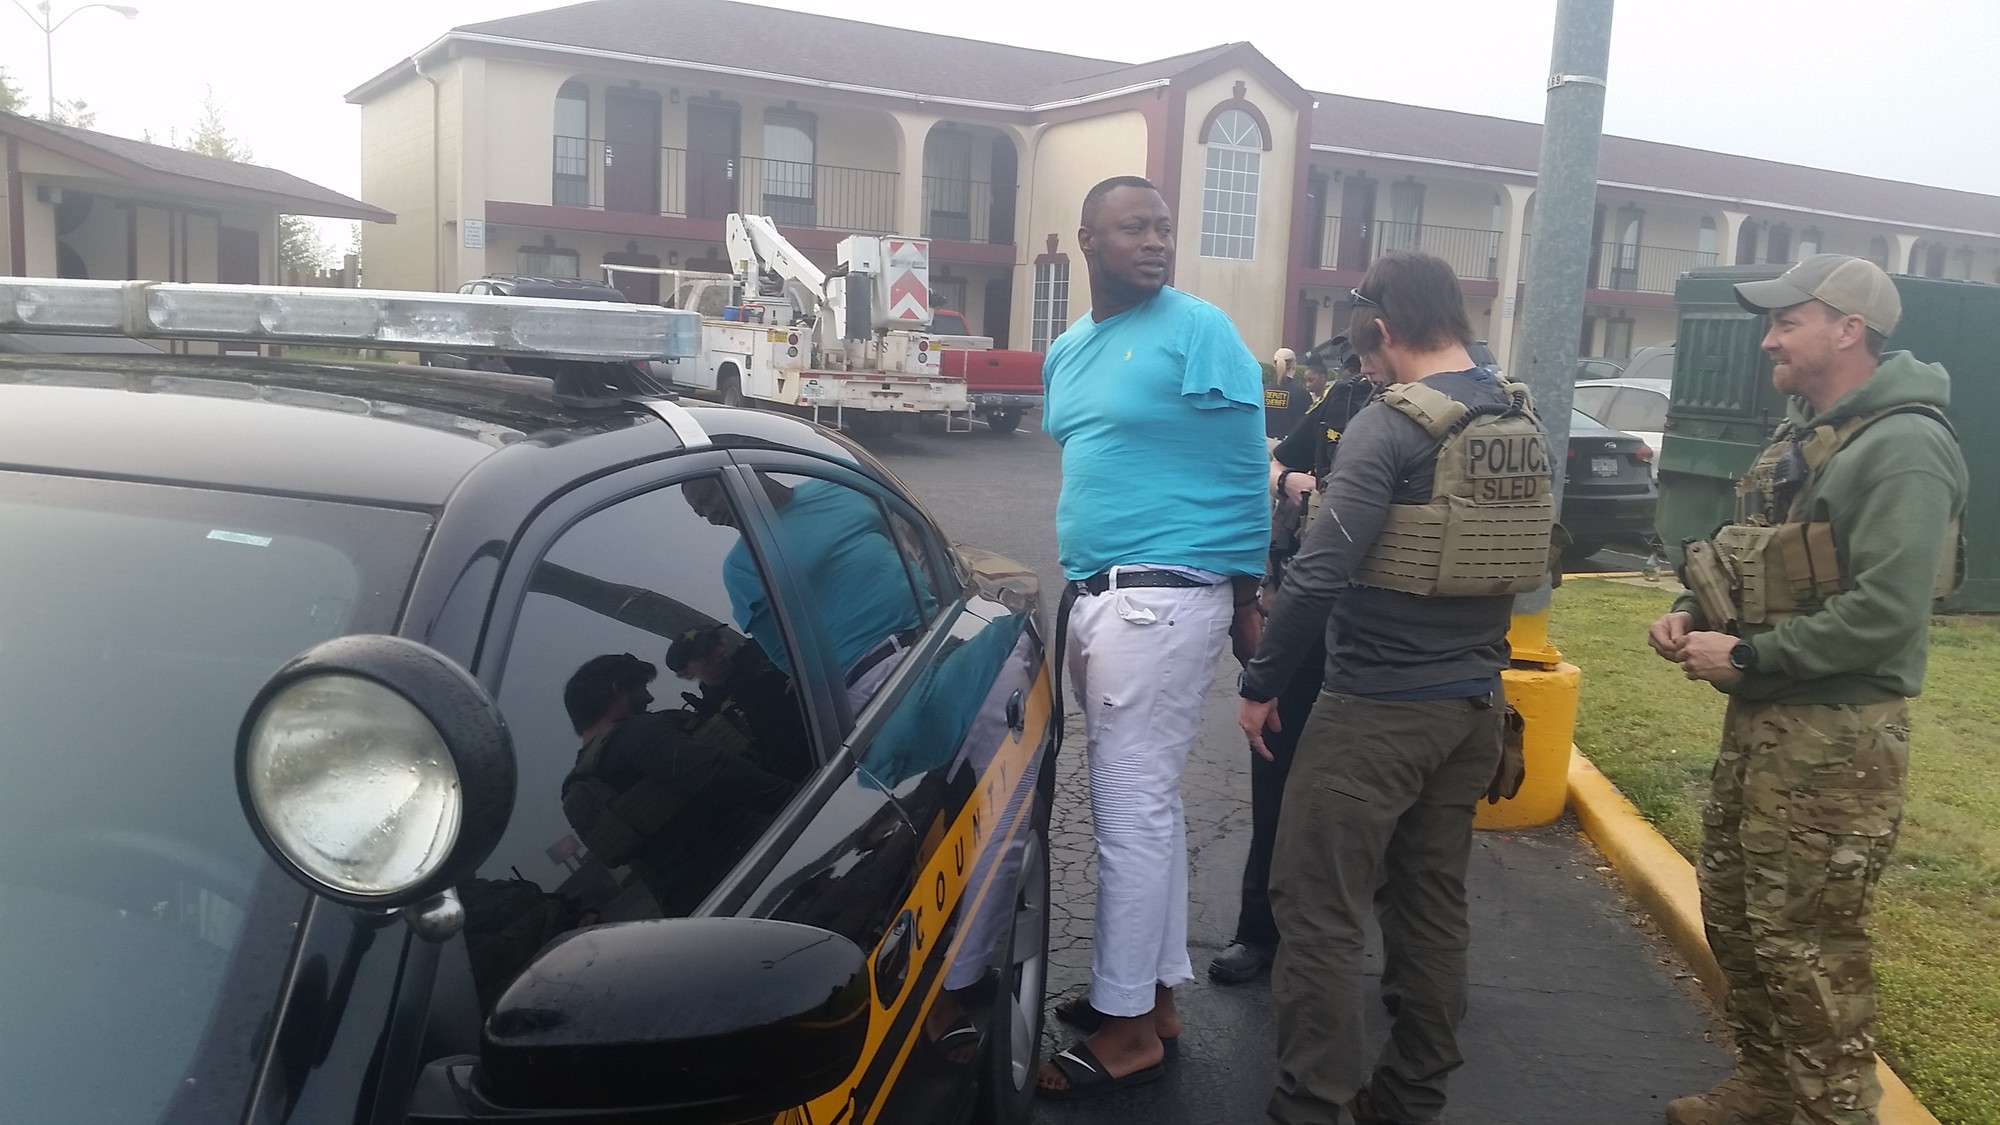 Travis Dunham is cuffed before being placed in the back of a patrol car at a motel on Tuesday morning.